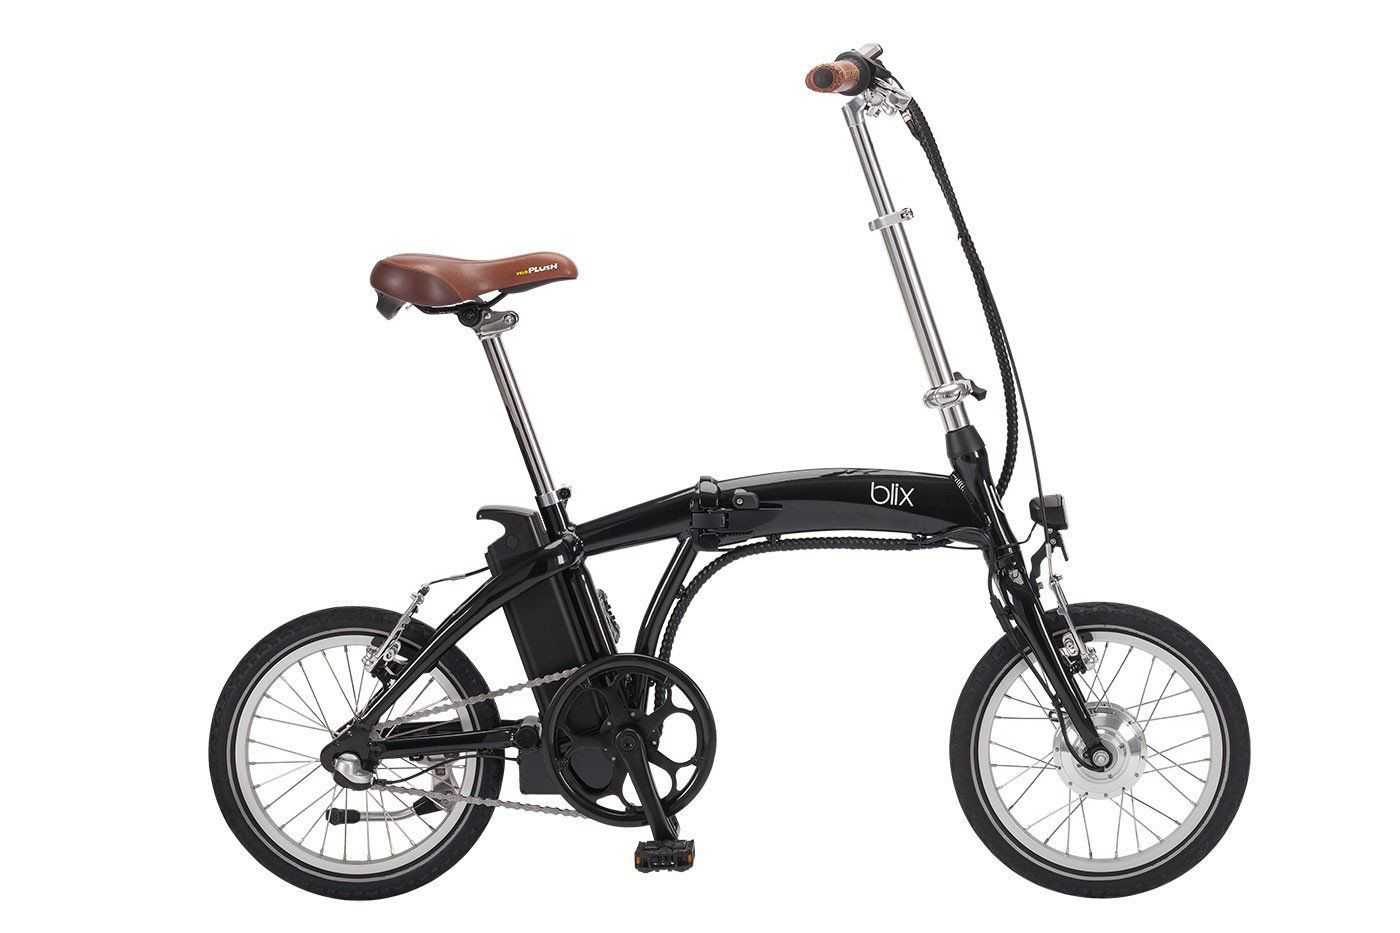 Blix Vika Travel Electric Folding Compact